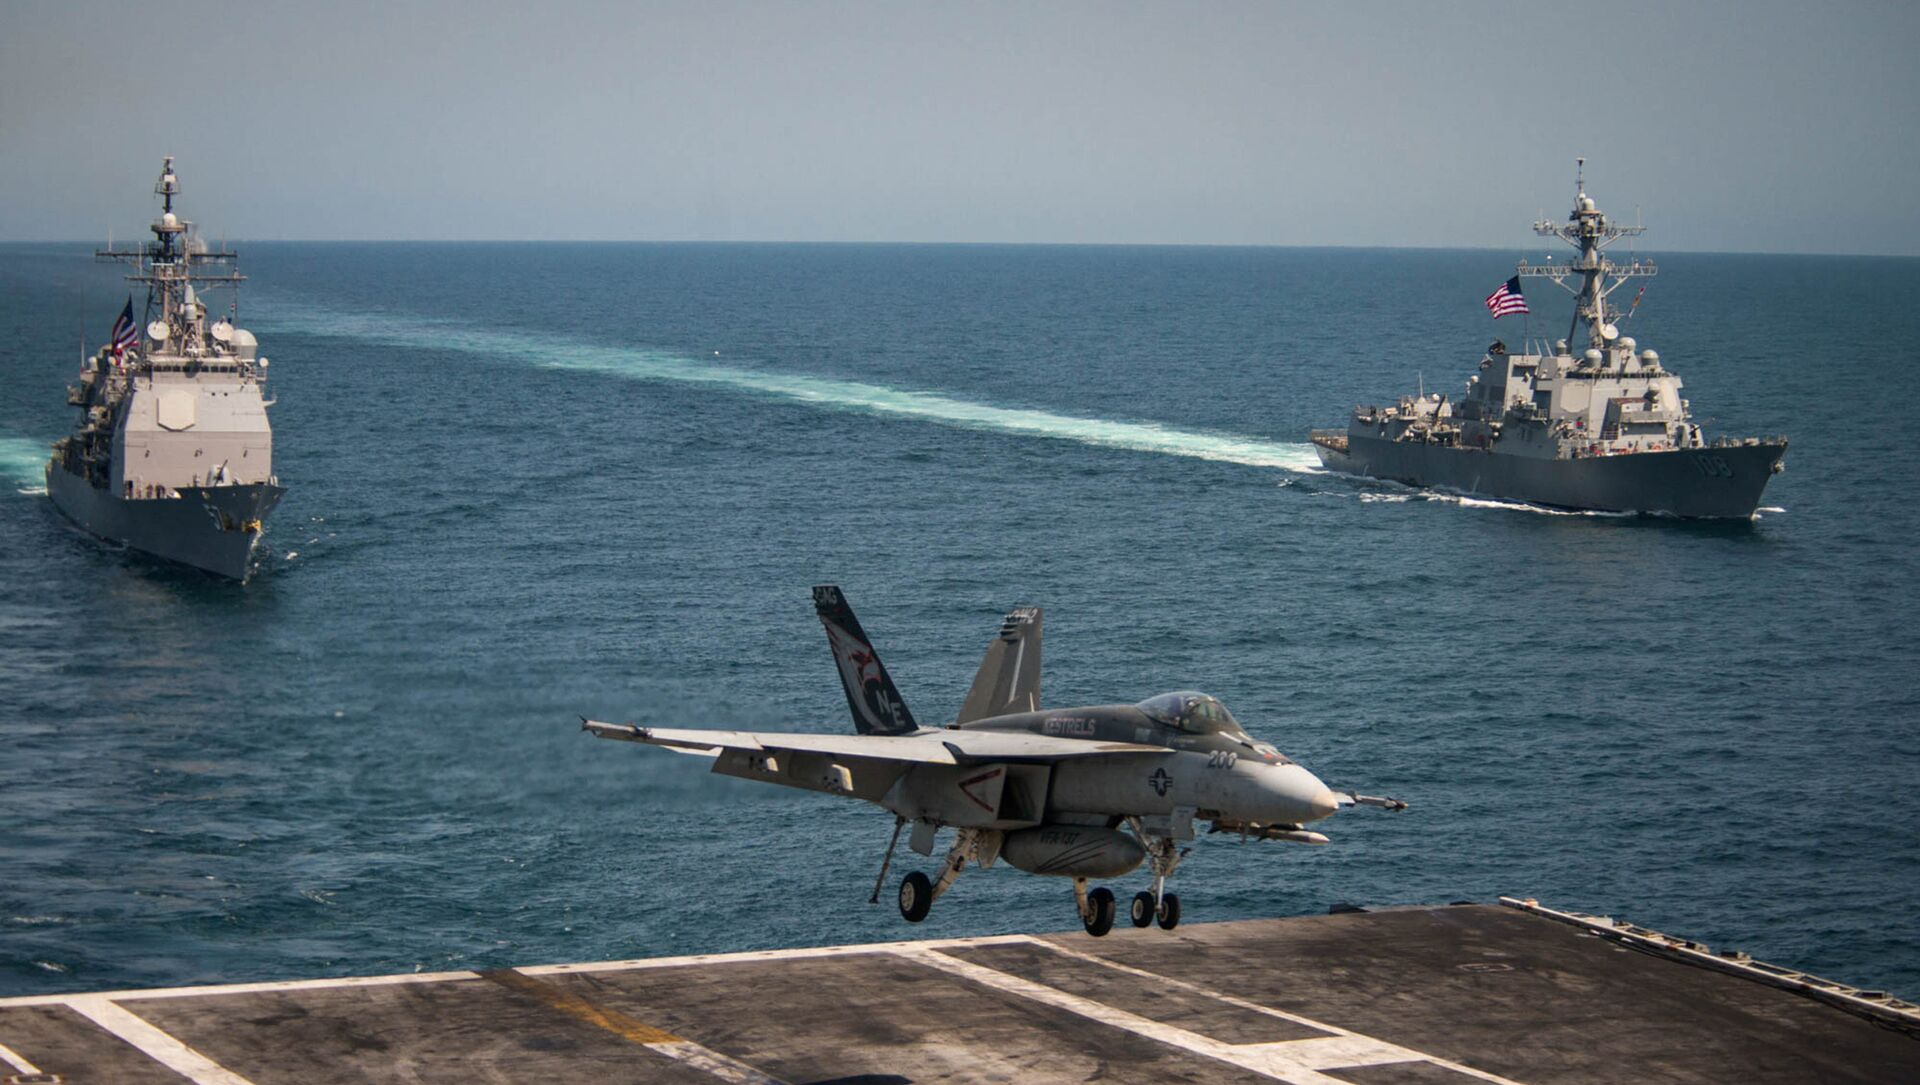 An F/A-18E Super Hornet lands on the flight deck of the U.S. Navy aircraft carrier USS Carl Vinson as the Ticonderoga-class guided-missile cruiser USS Lake Champlain (L) and the Arleigh Burke-class guided-missile destroyer USS Wayne E. Meyer transit the western Pacific Ocean May 3, 2017. - Sputnik International, 1920, 04.08.2021